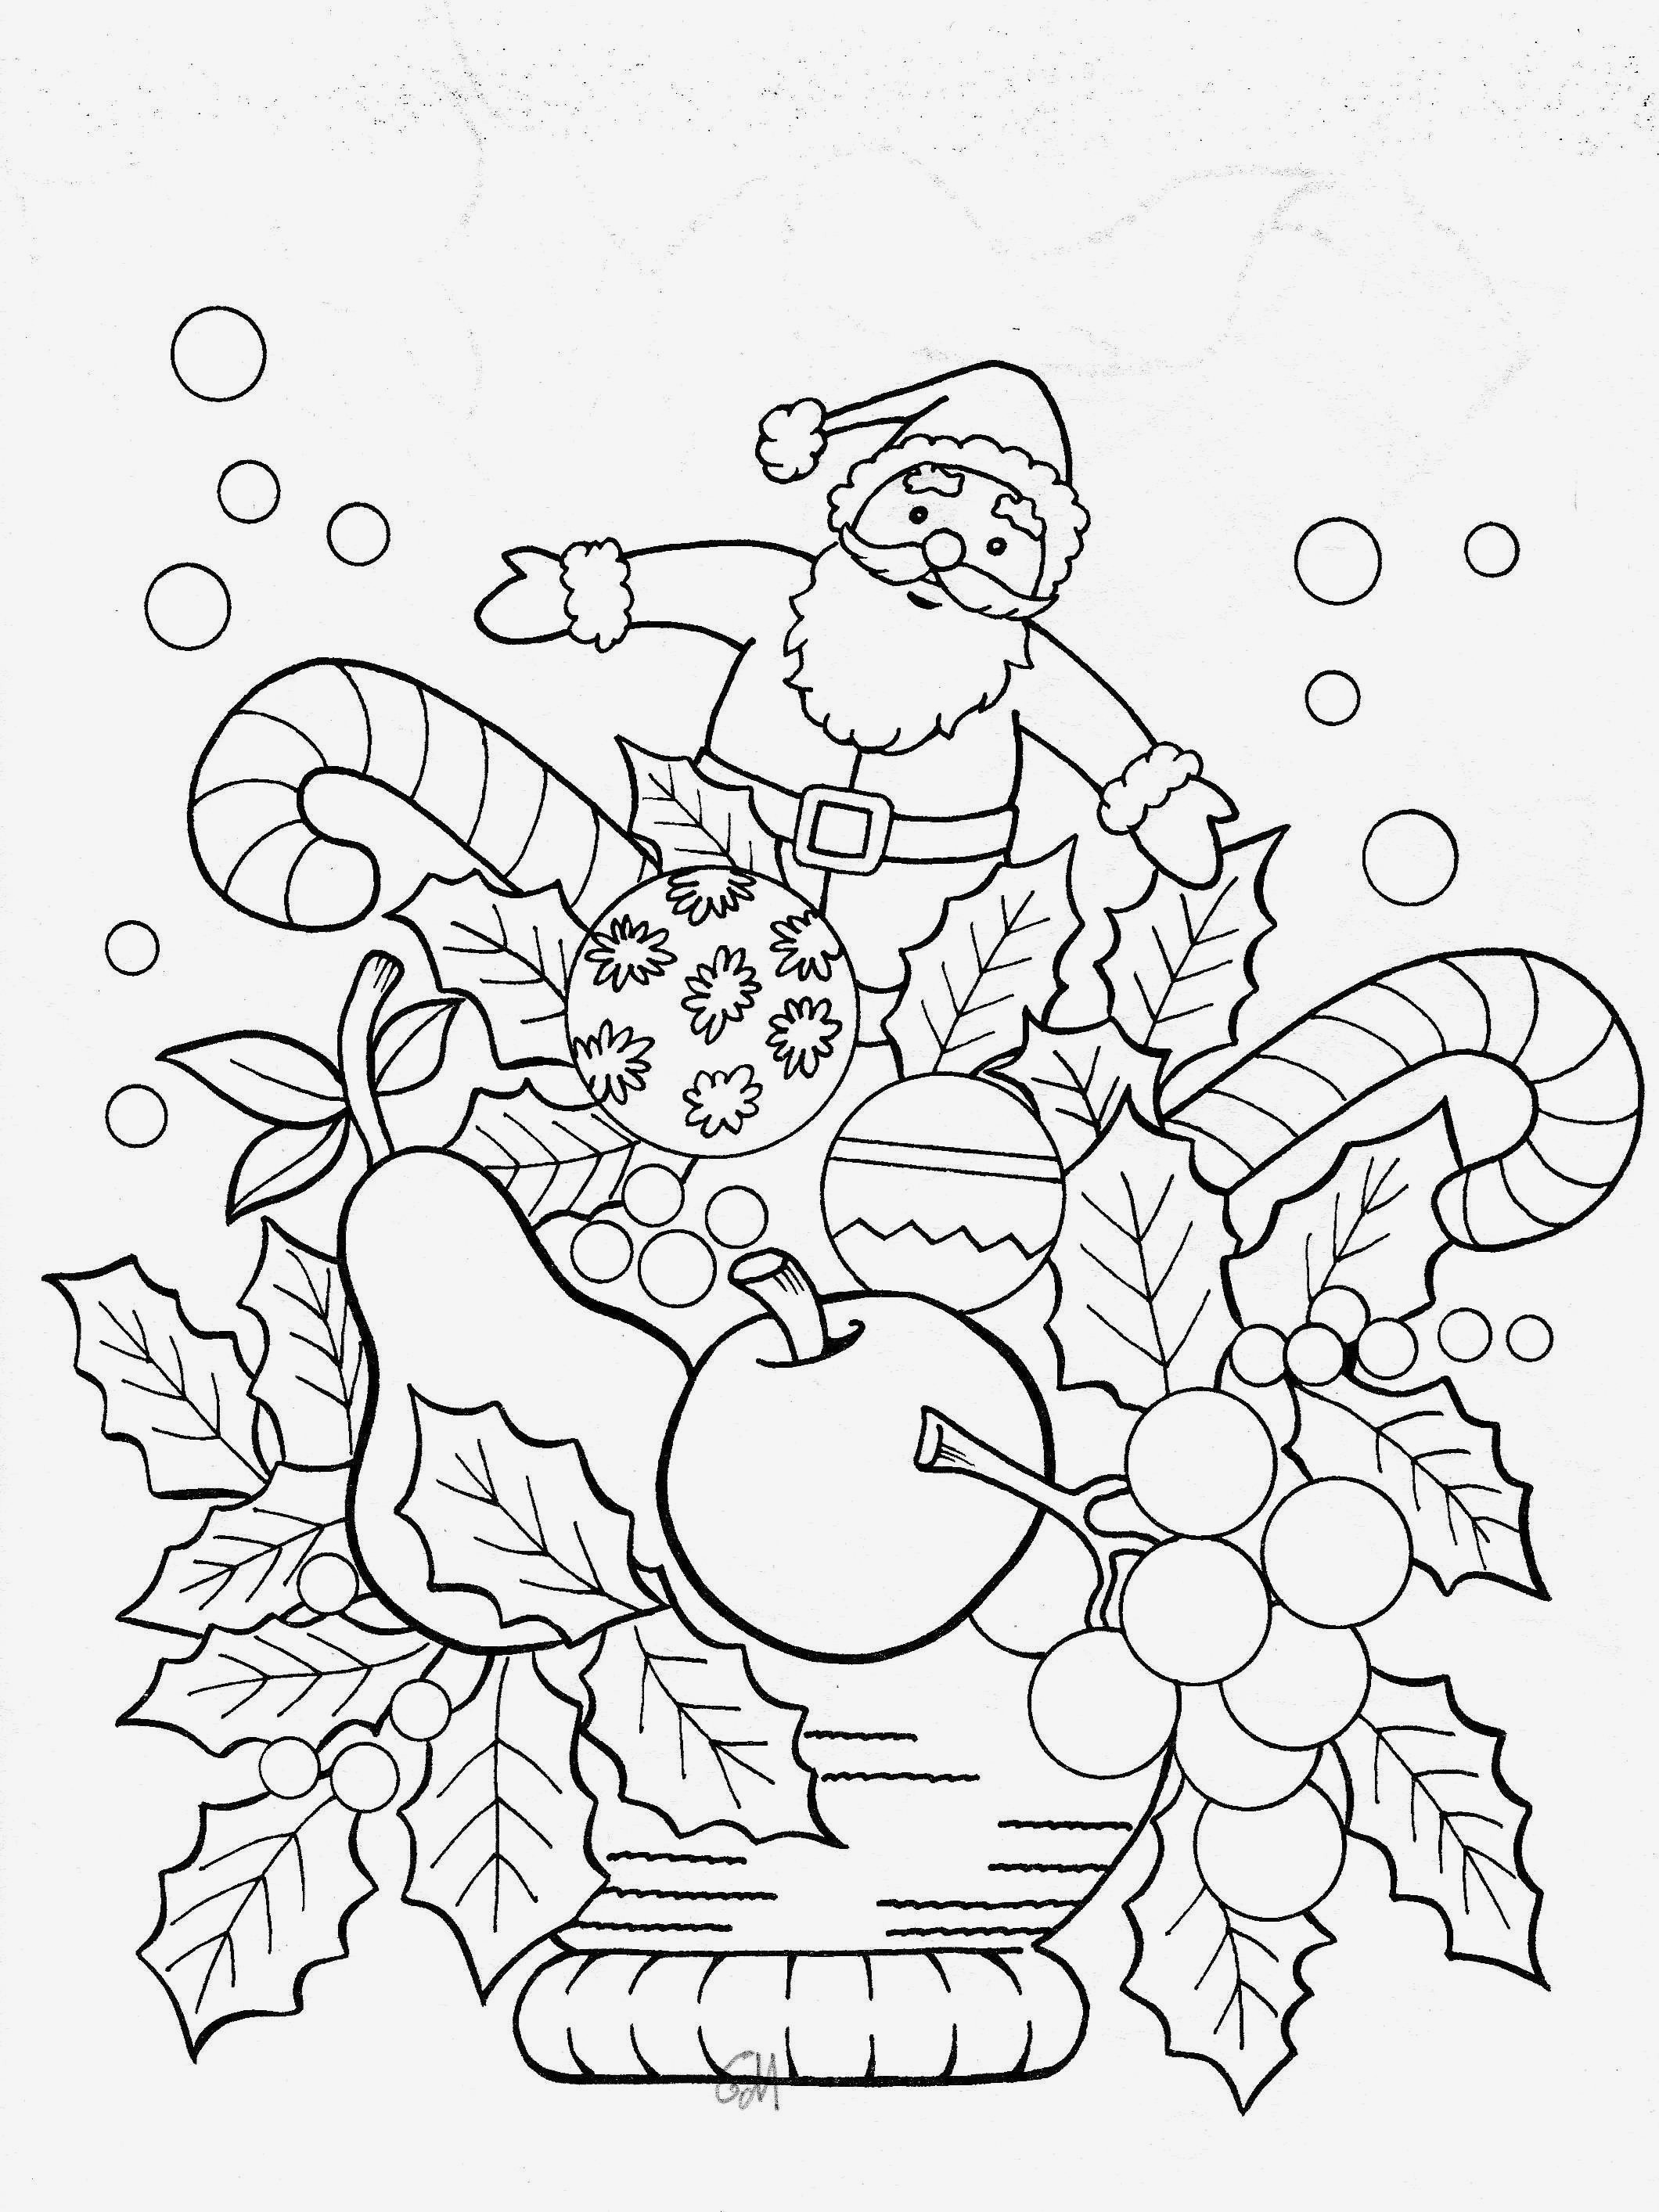 Ninjago Lloyd Bilder Das Beste Von Ninjago Coloring Sheets Coloring & Activity 38 Coloring Pages for Bilder